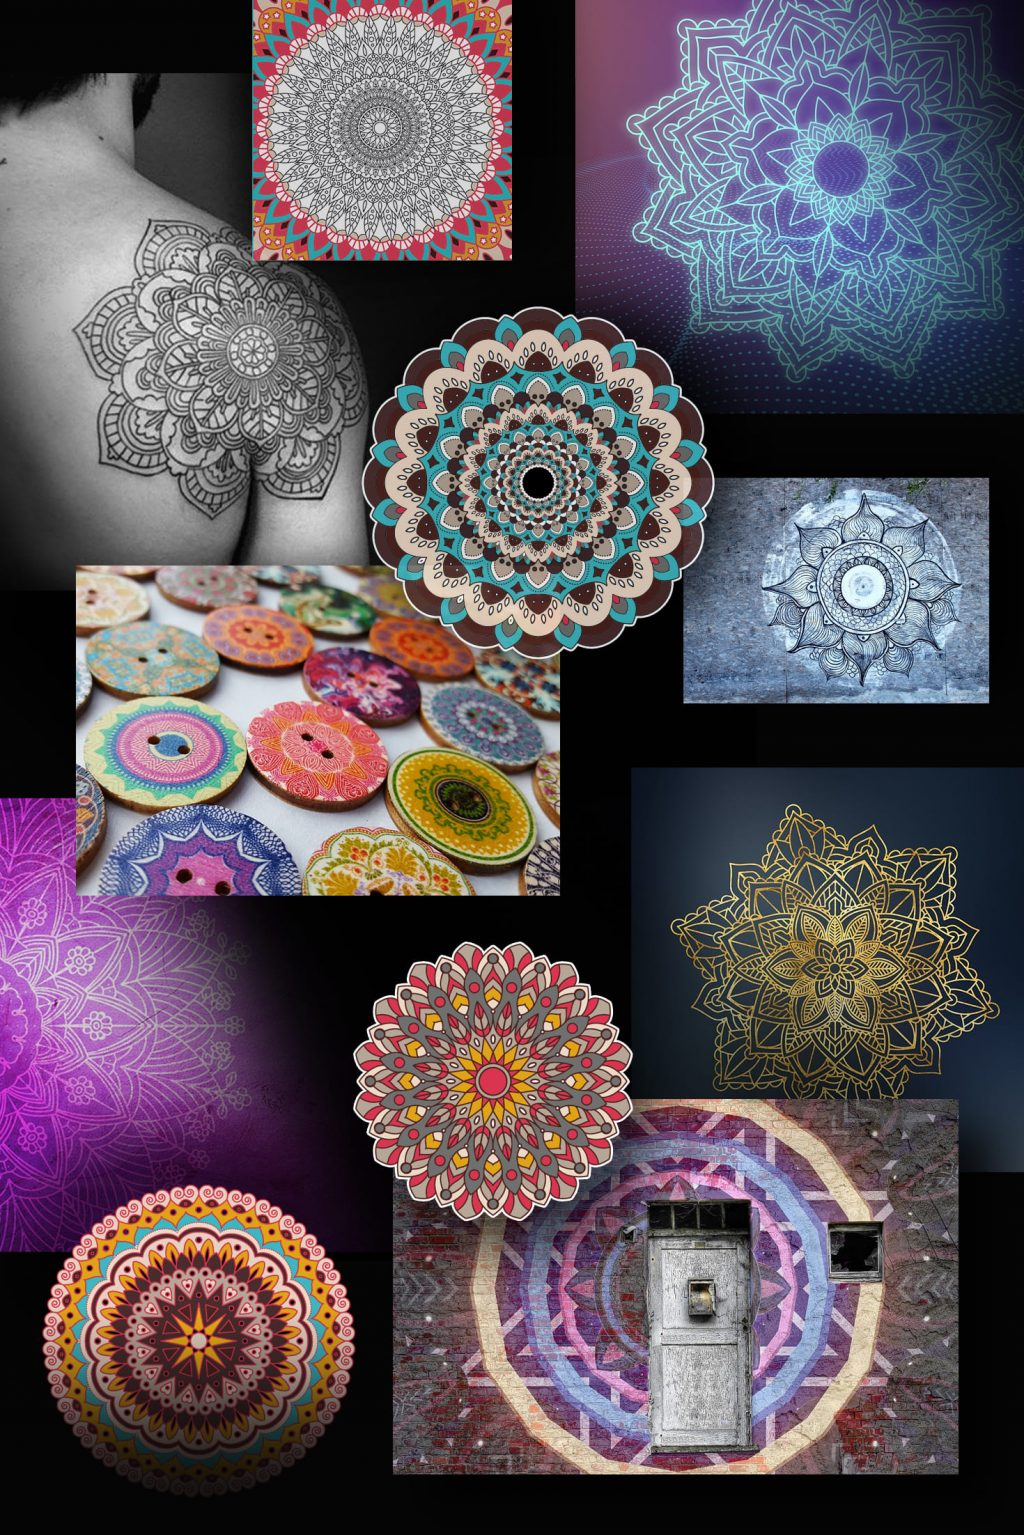 A selection of mandalas in the Pinterest format.